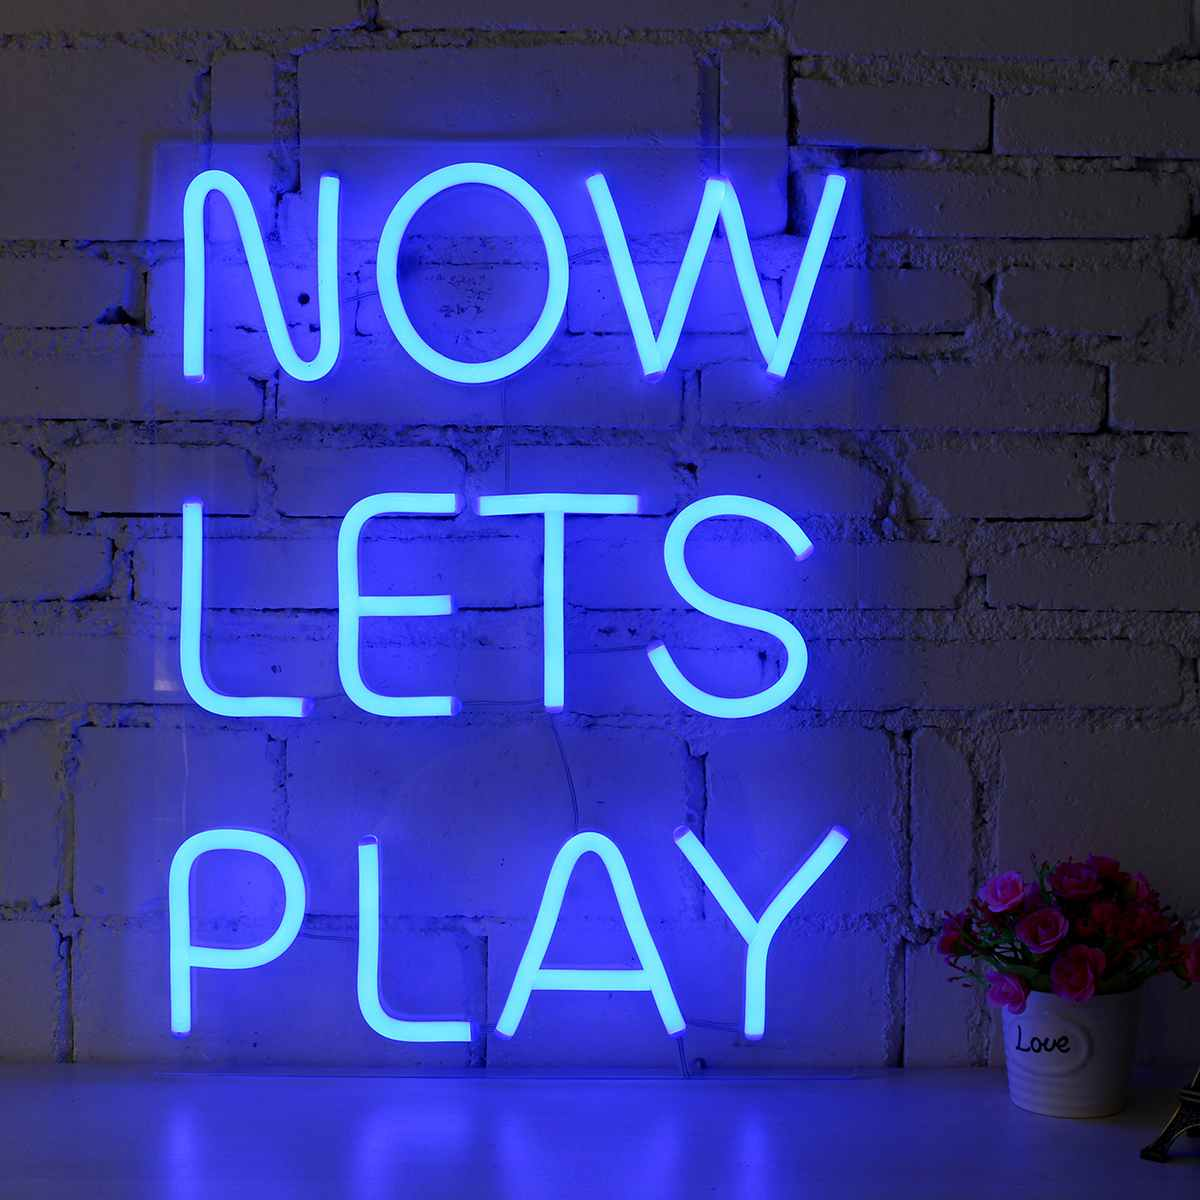 NOW LETS PLAY LED Neon Sign Tube Light Visual Artwork Bar Pub Club Wall Hanging Bar Party Decoration Lighting